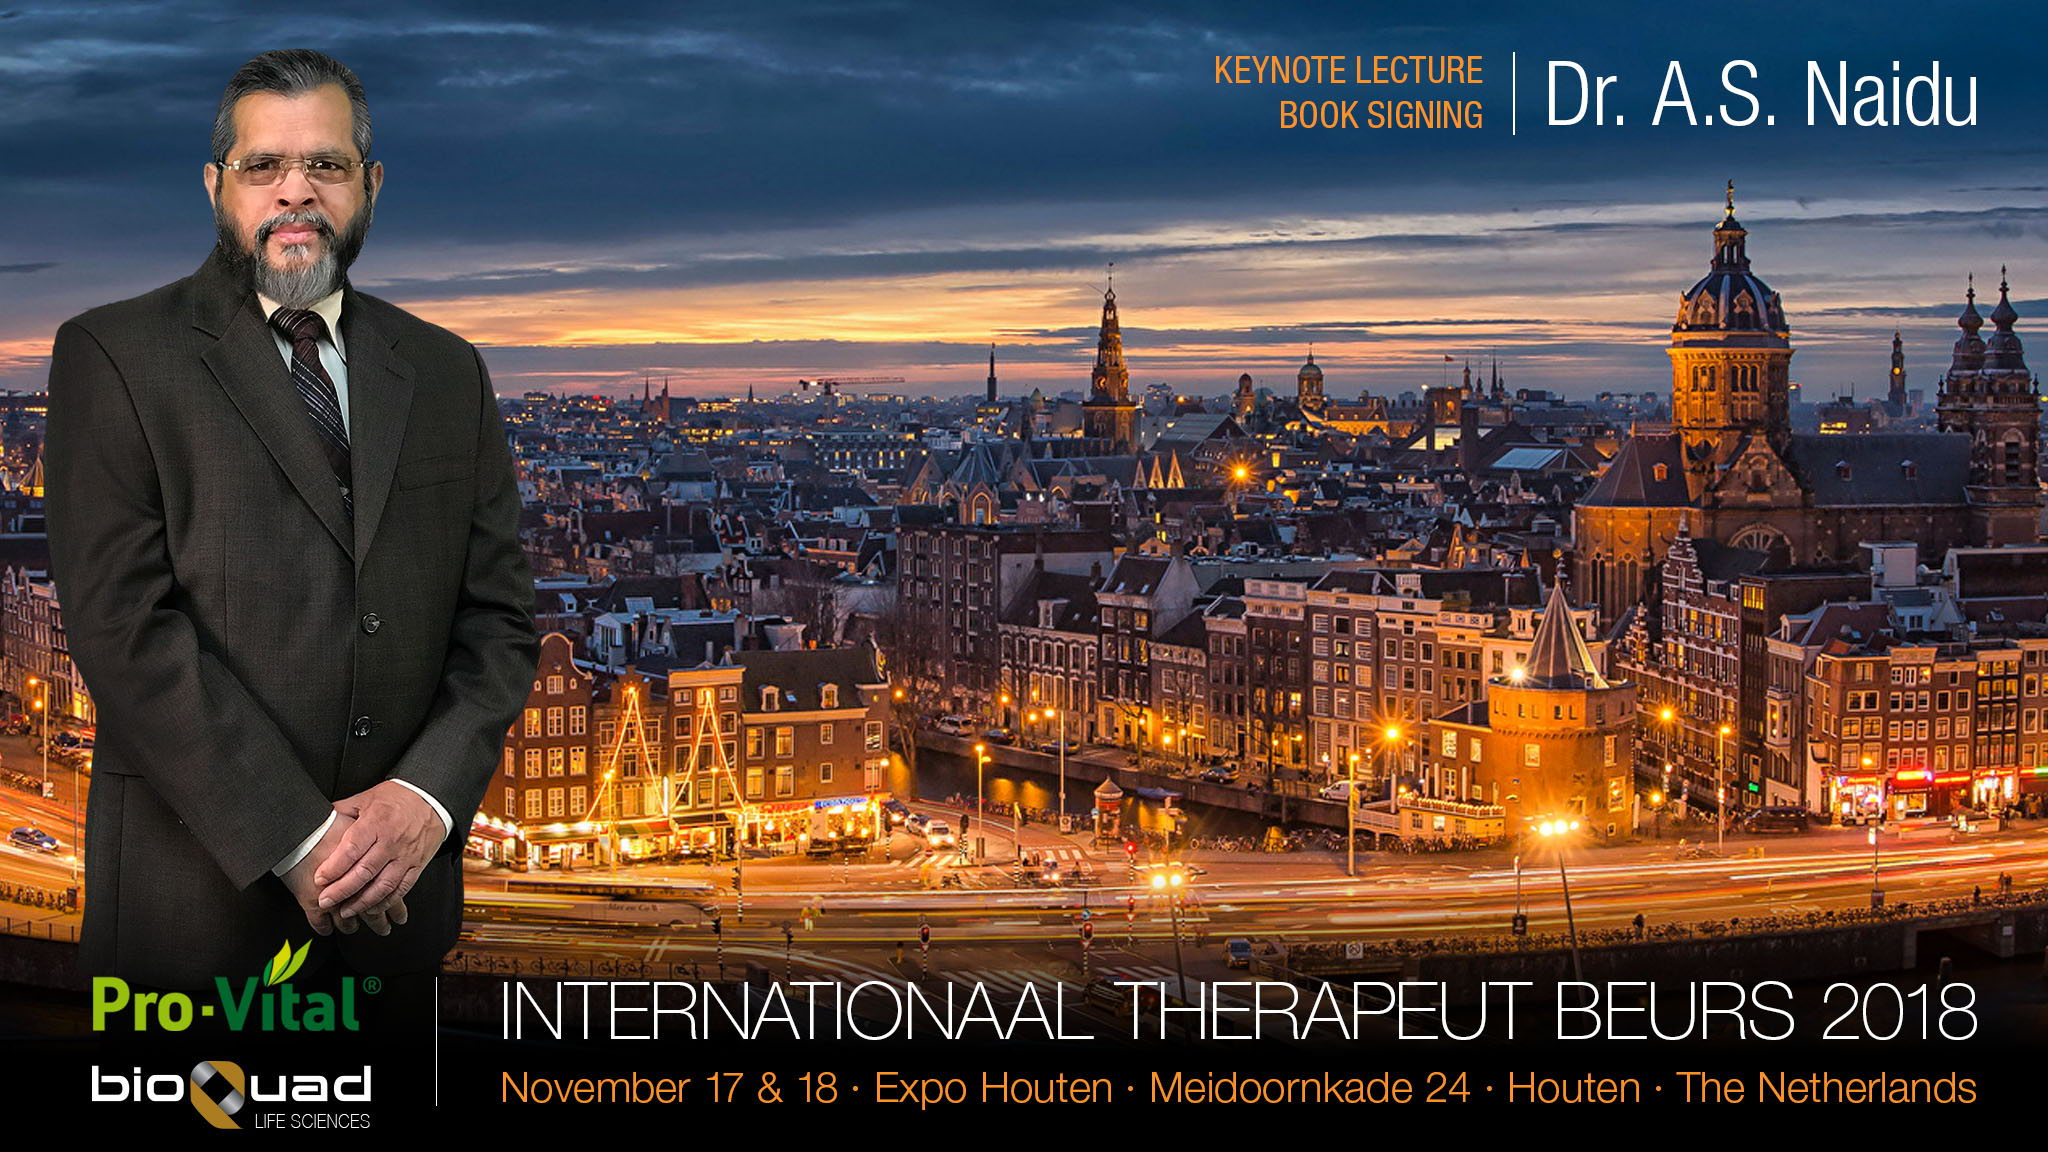 Dr. Naidu standing in front of Amsterdam skyline